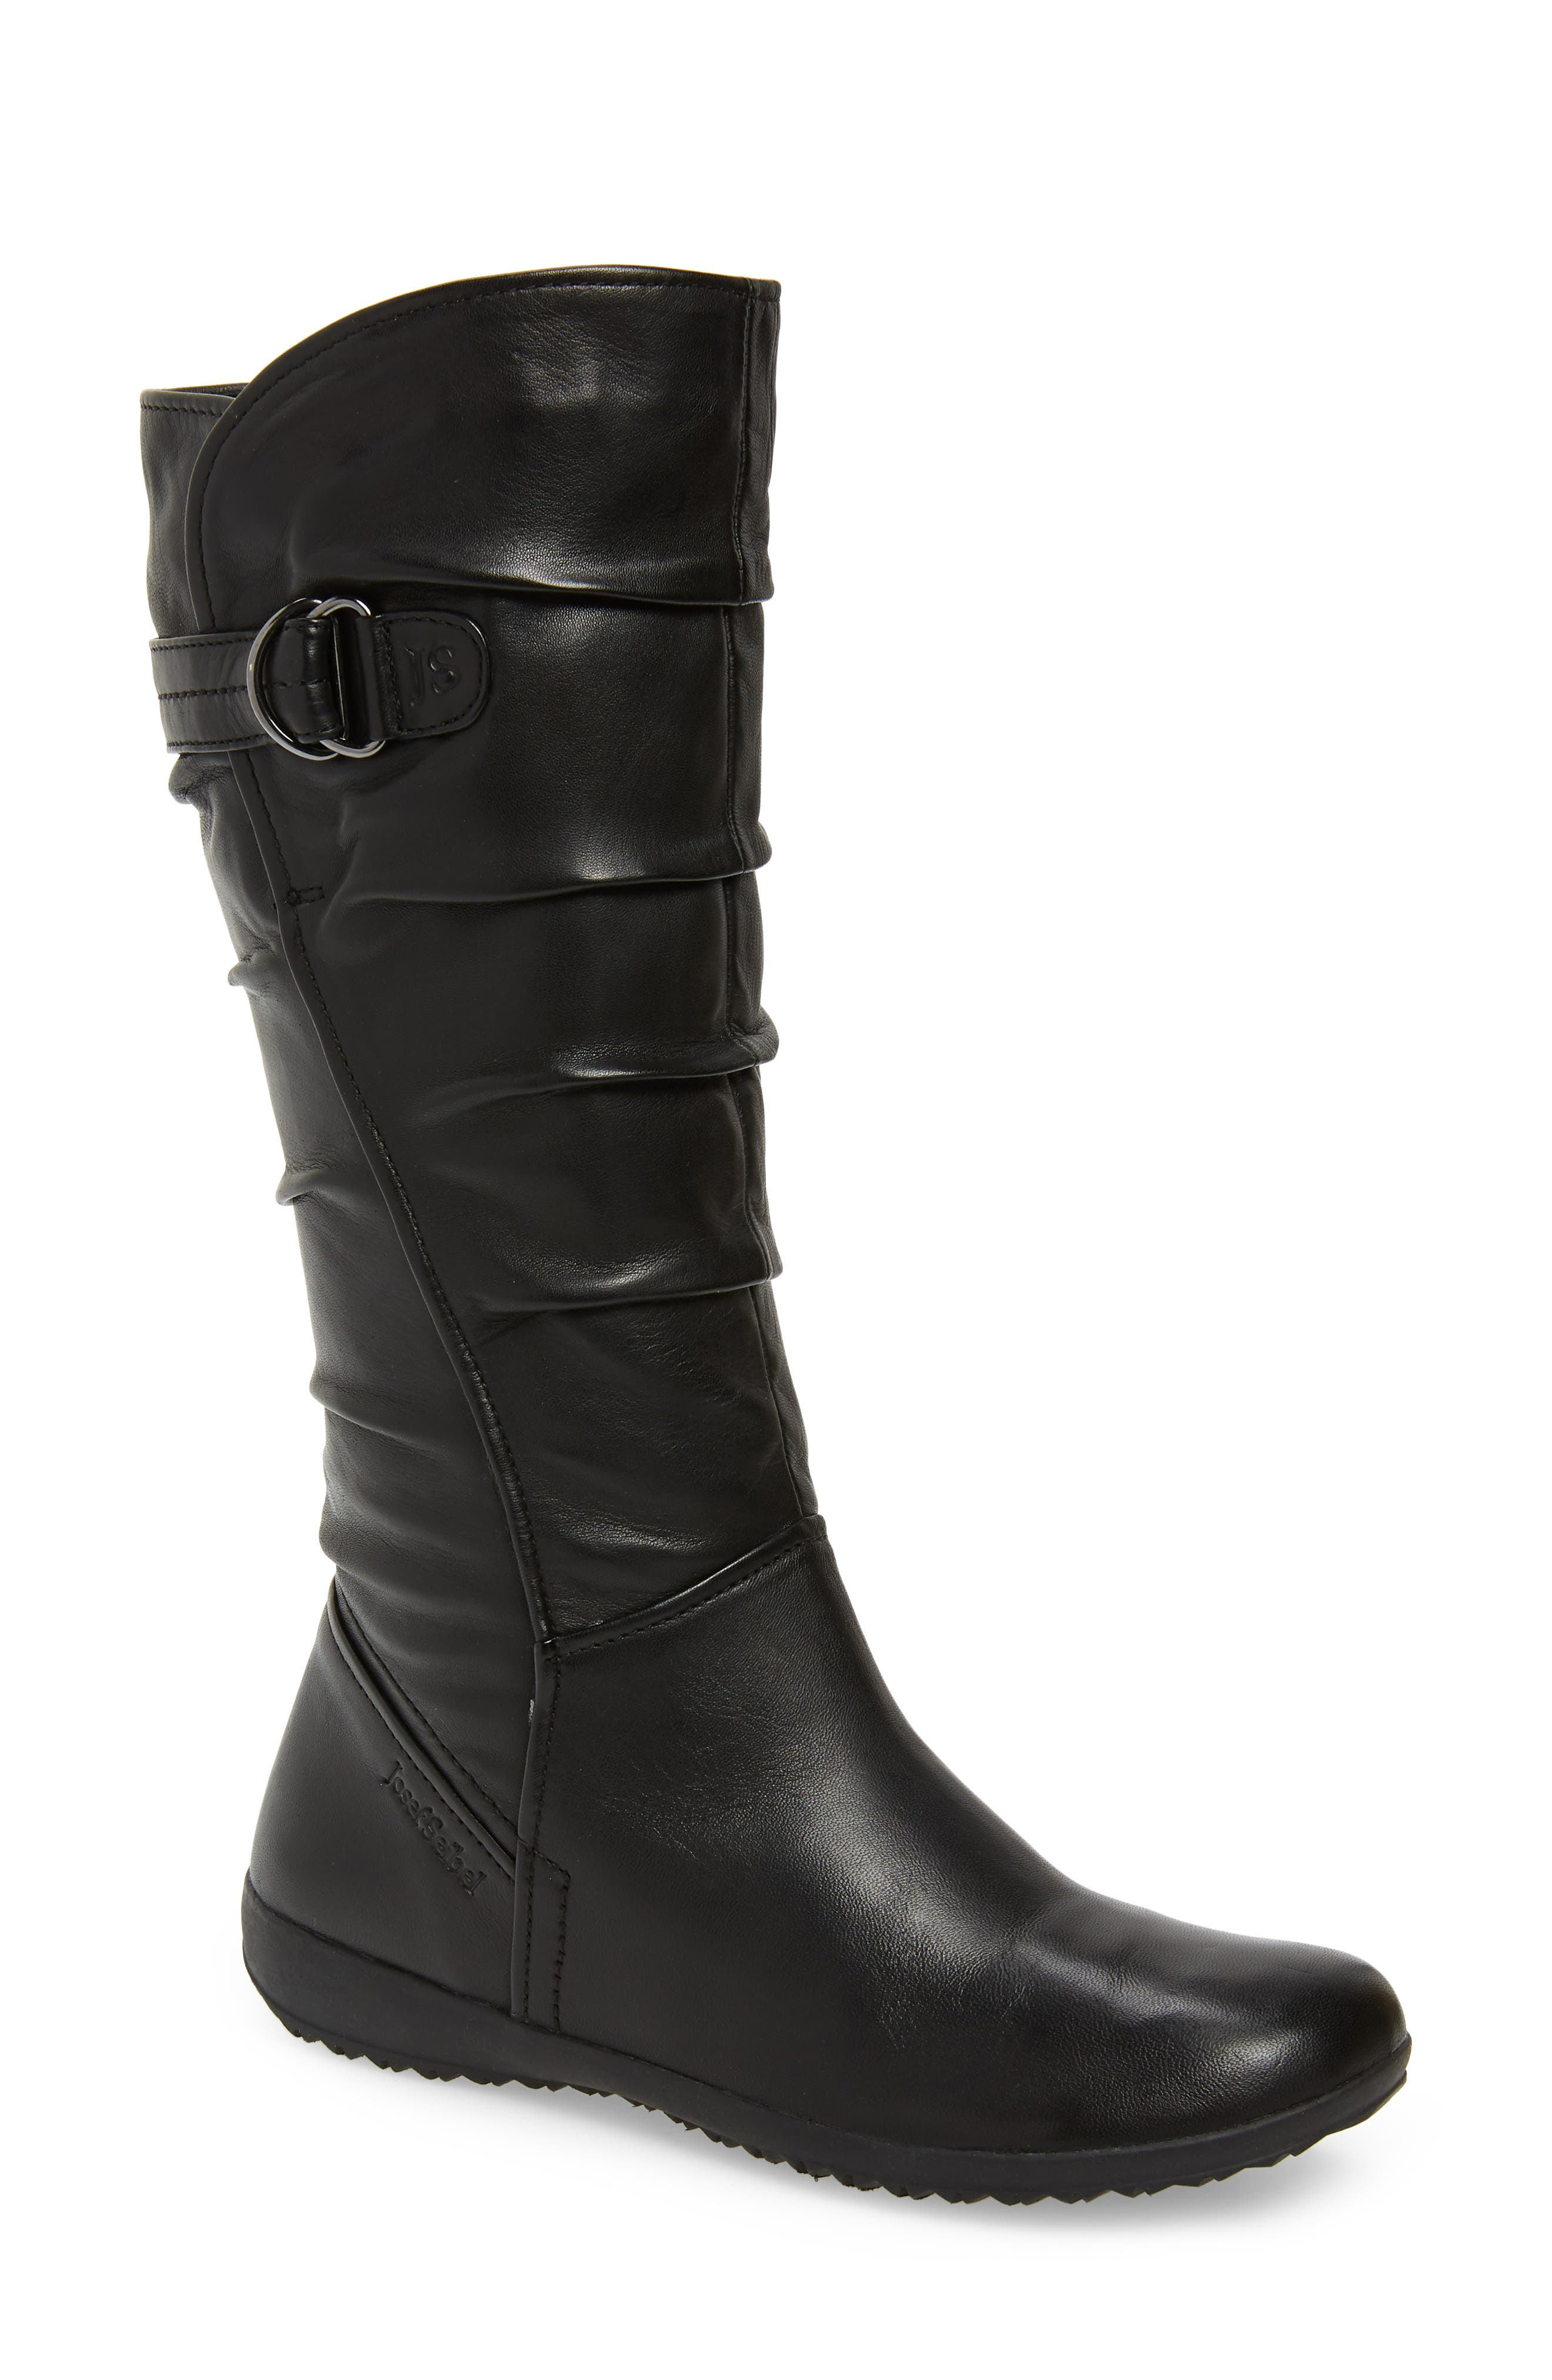 Josef Seibel Naly 23 Boot, Black